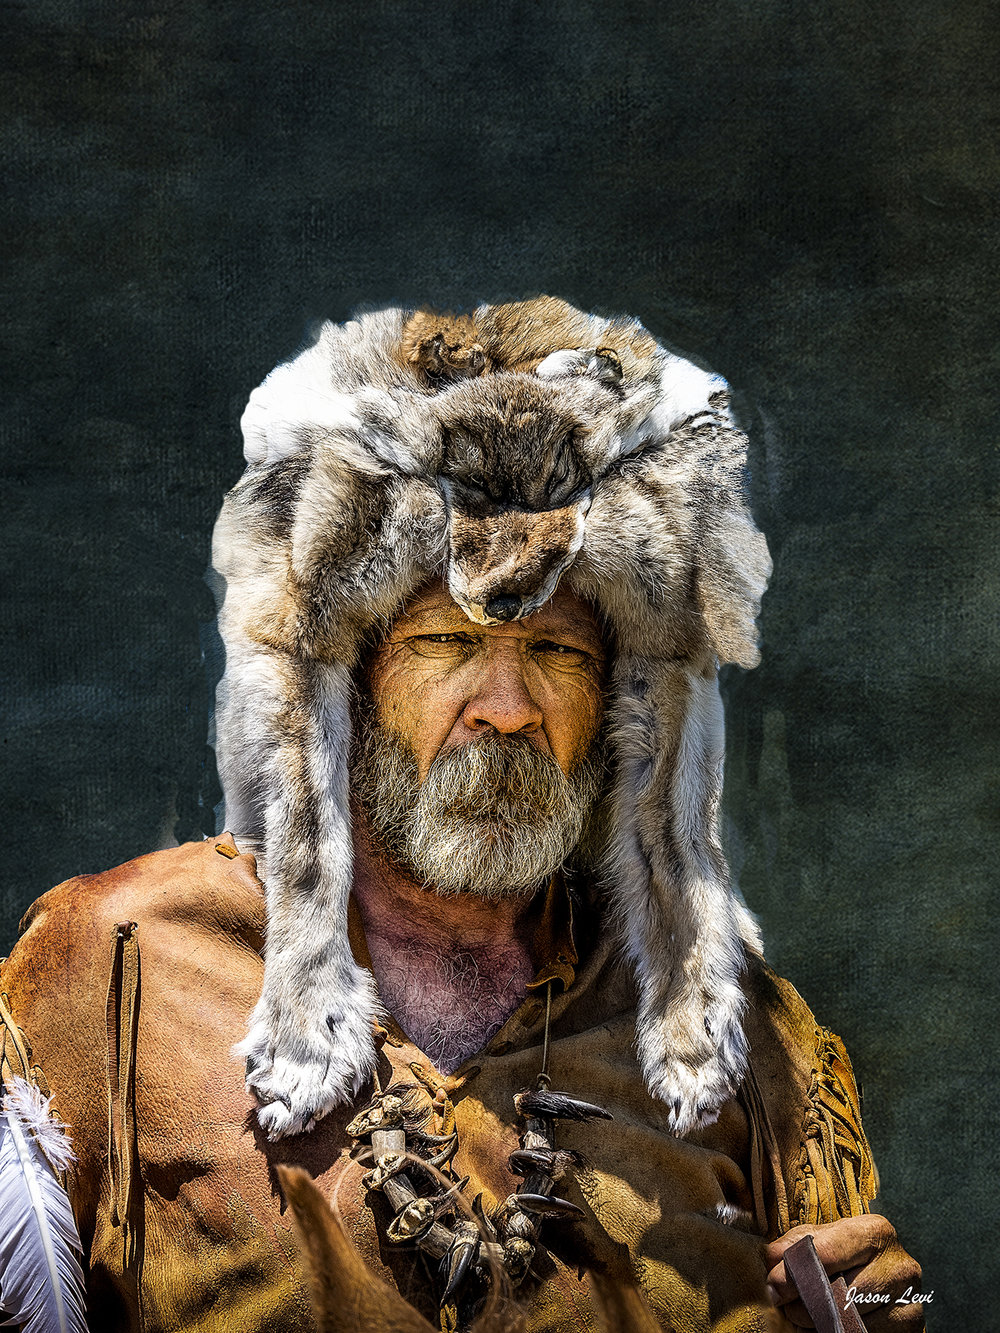 MOUNTAIN MAN FUR HATFINALSMALL.jpg